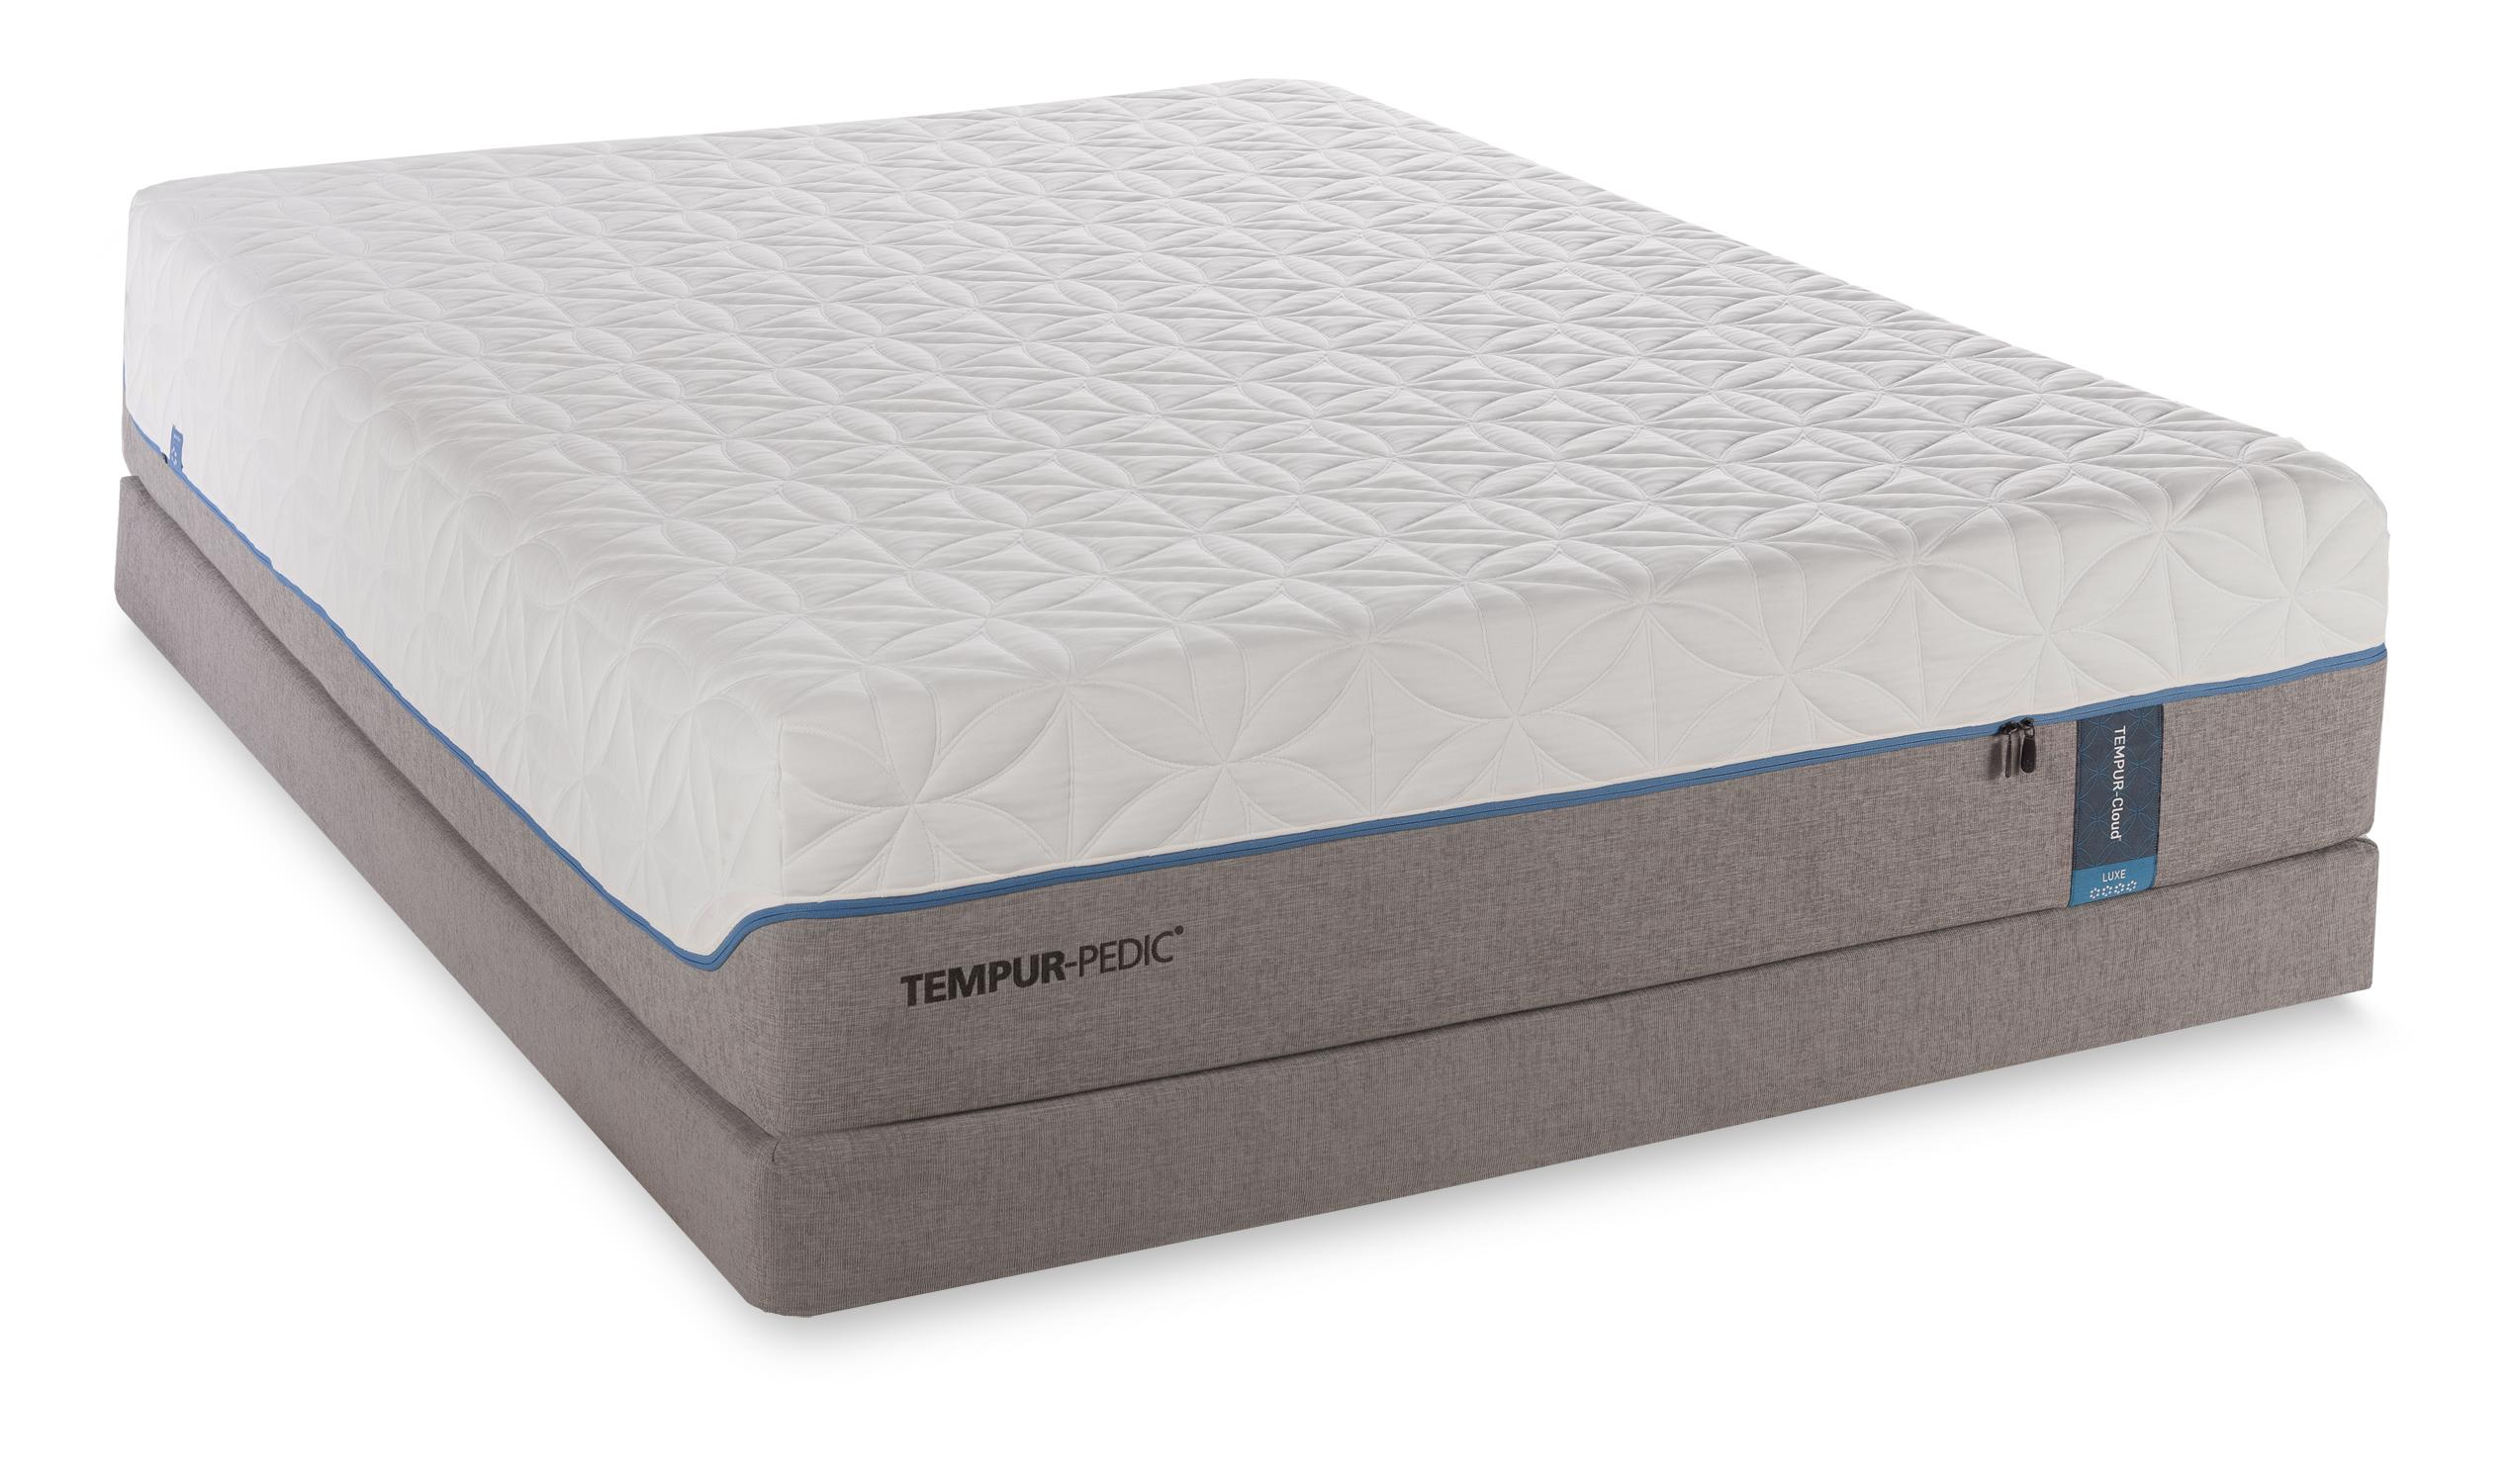 Tempur-Pedic® TEMPUR-Cloud Luxe Cal King Ultra-Soft Mattress Set - Item Number: 10245280+2x20510190